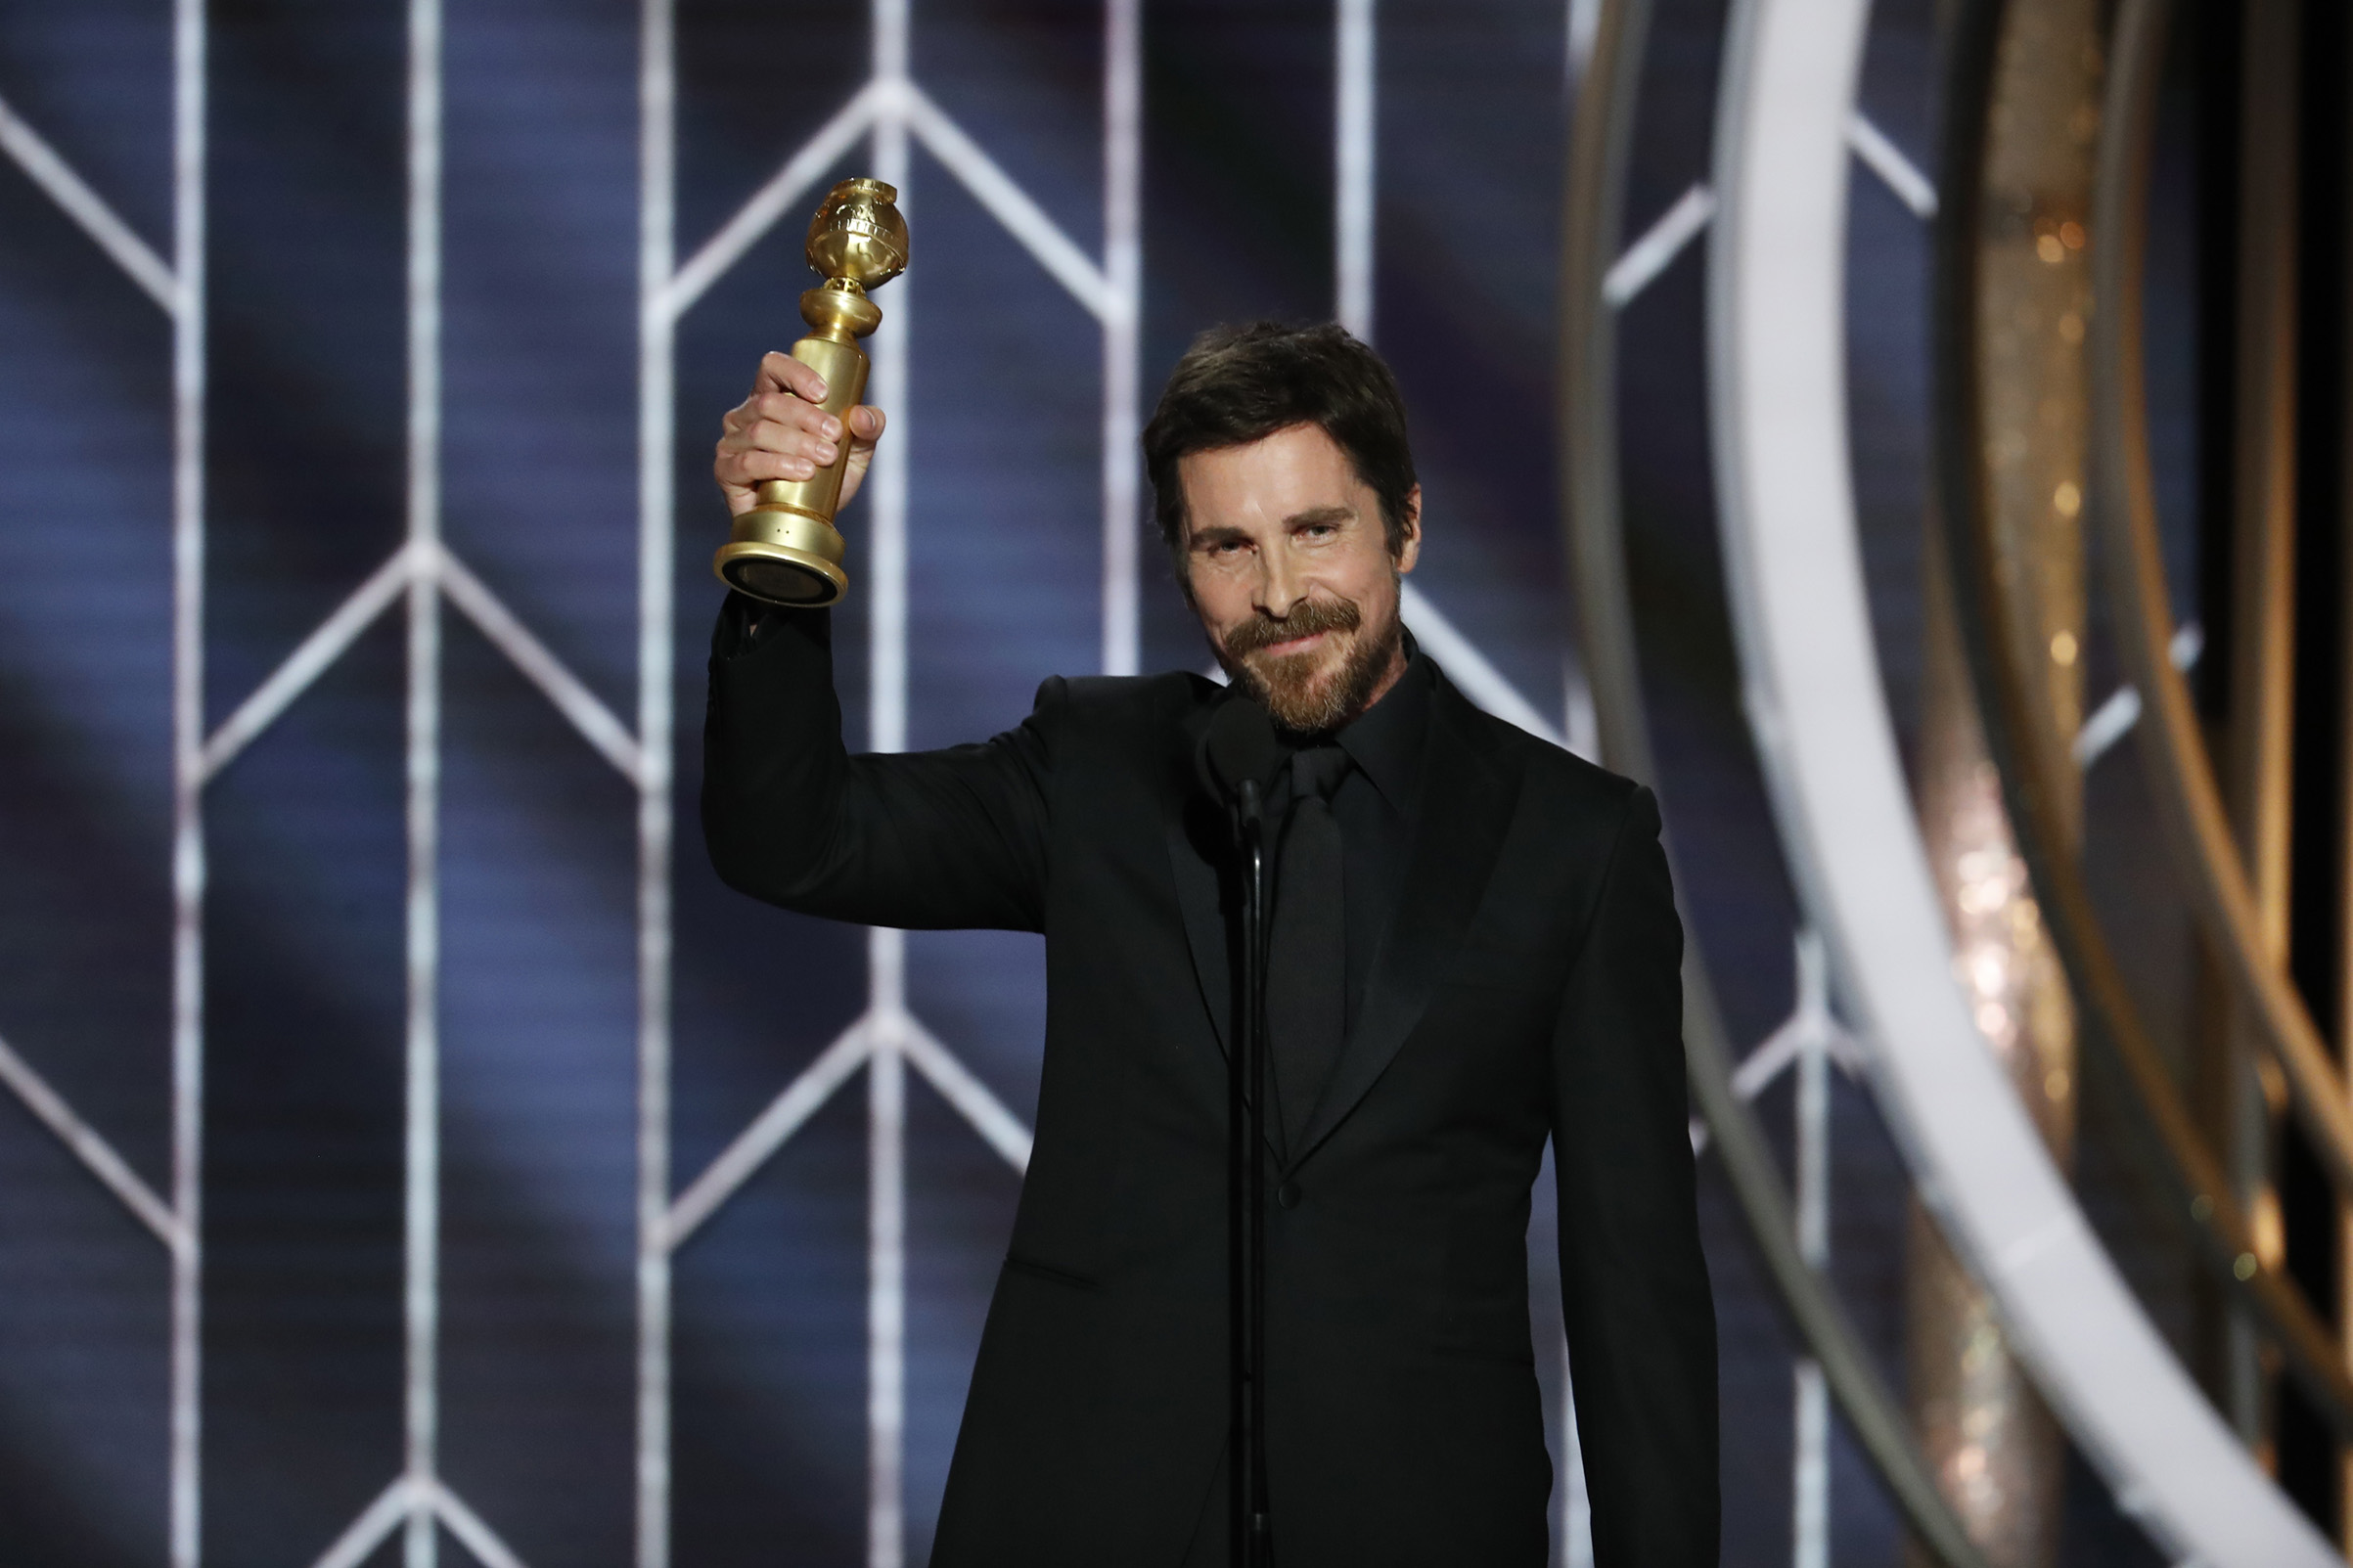 Vice - Christian Bale thanked Satan in his acceptance speech.